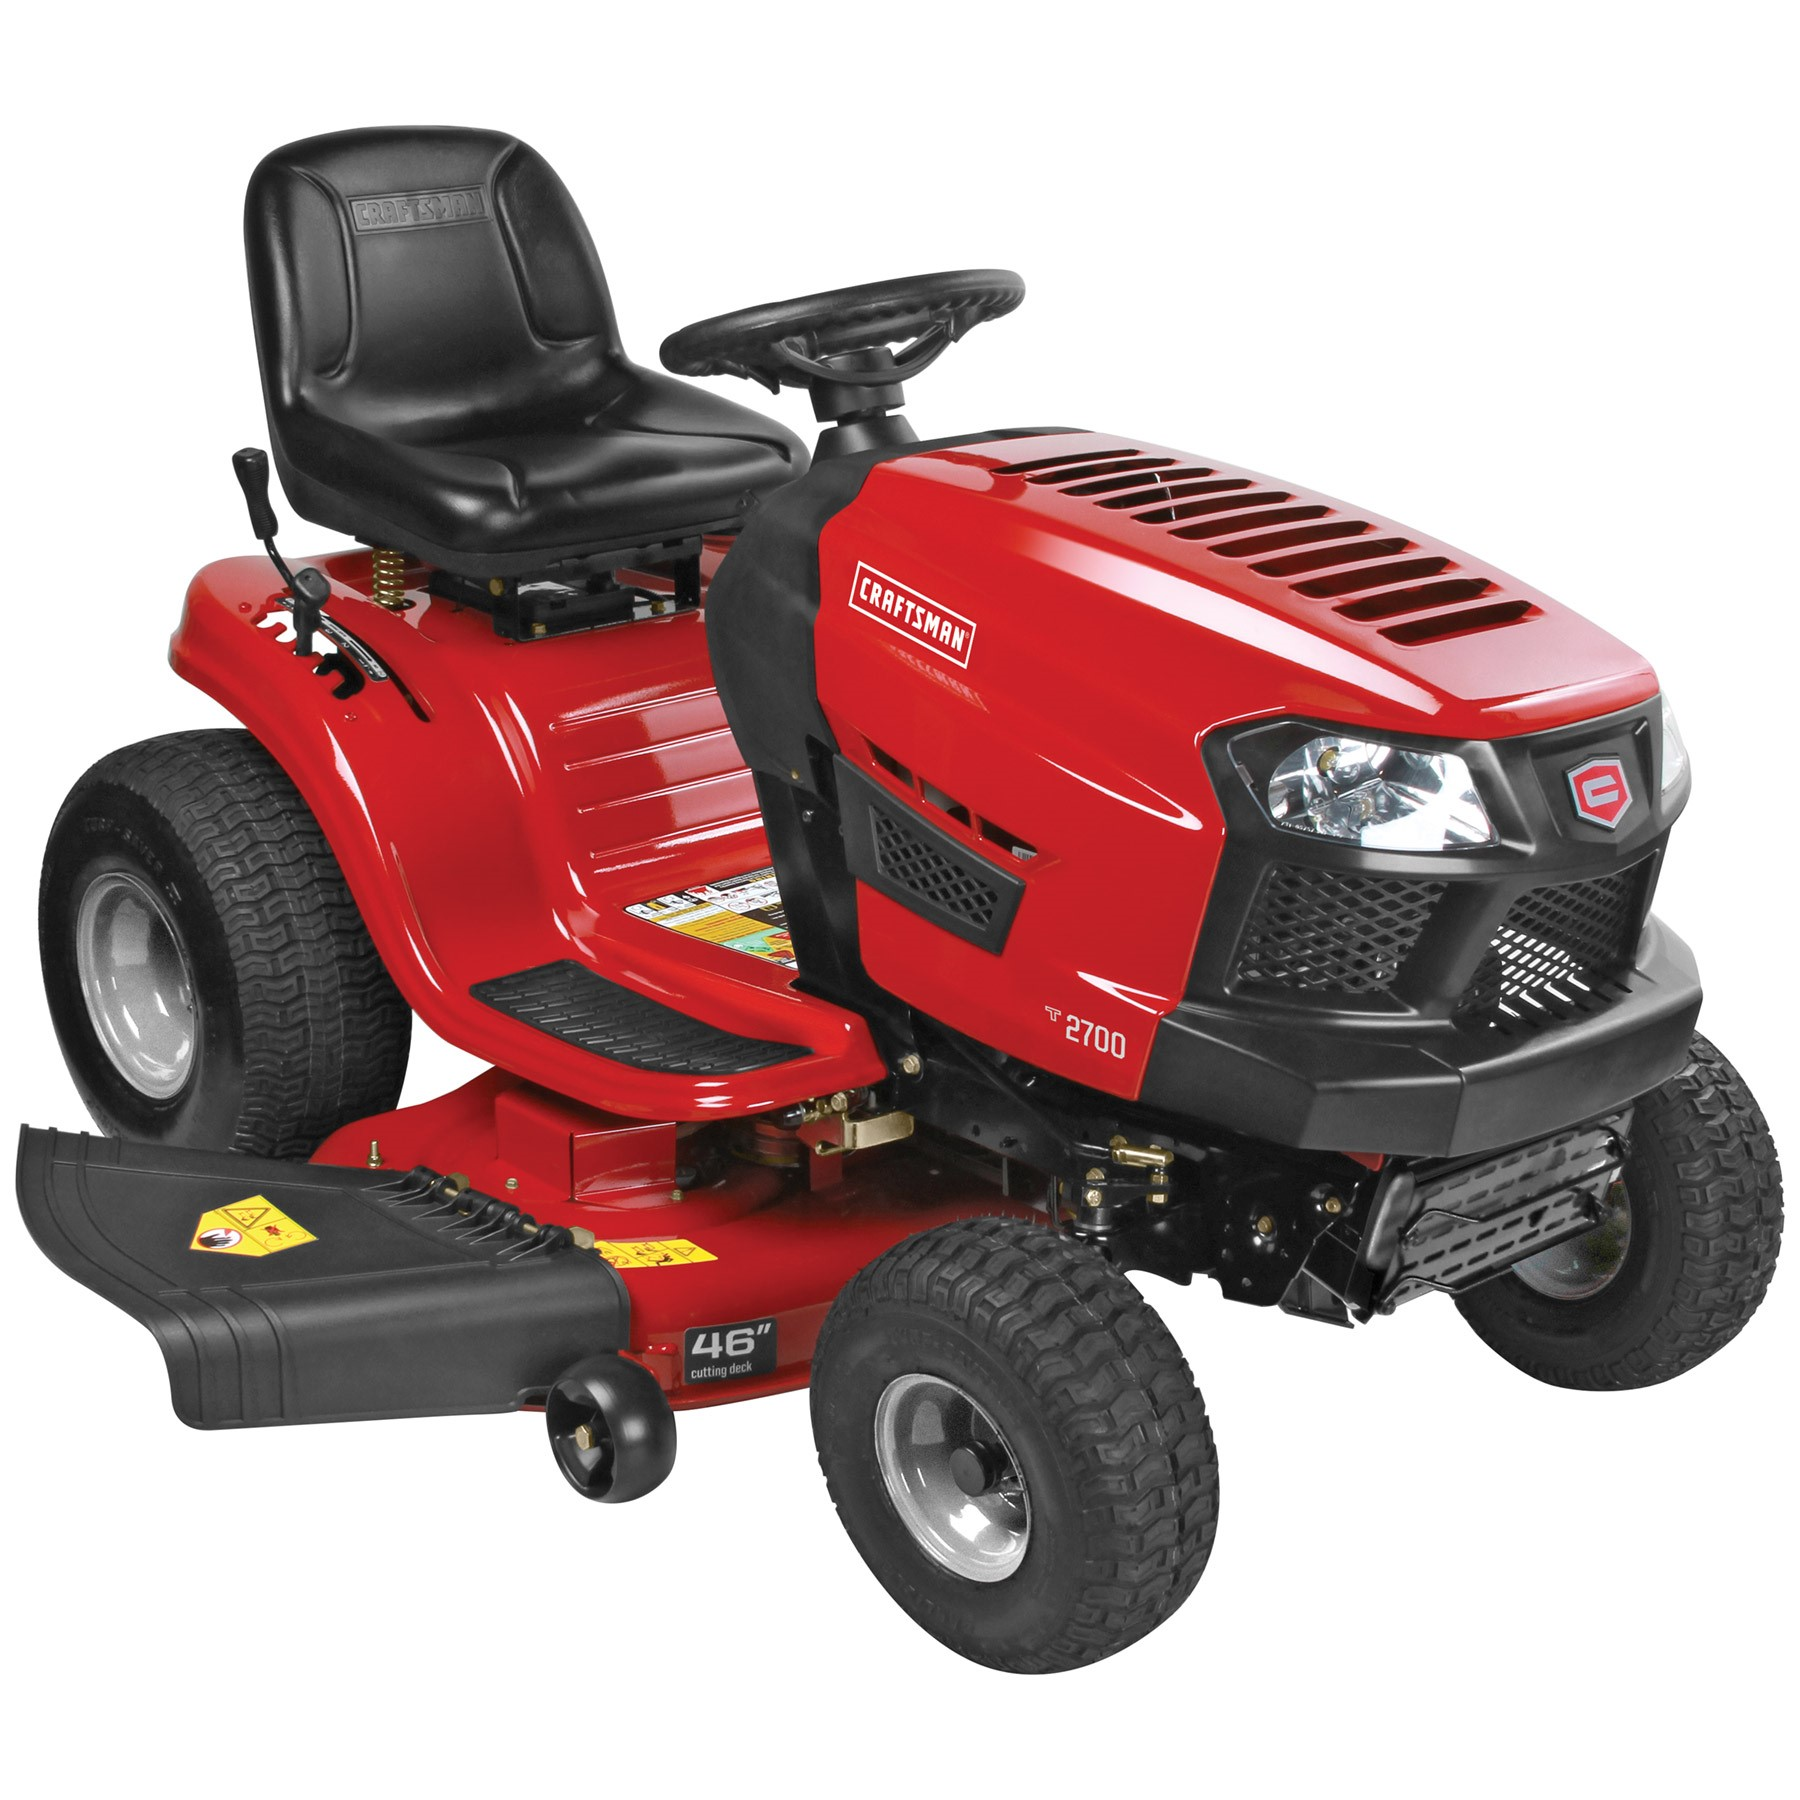 hight resolution of craftsman lawn mower service manual rh sears com basic lawn tractor wiring diagram manitou fork lift